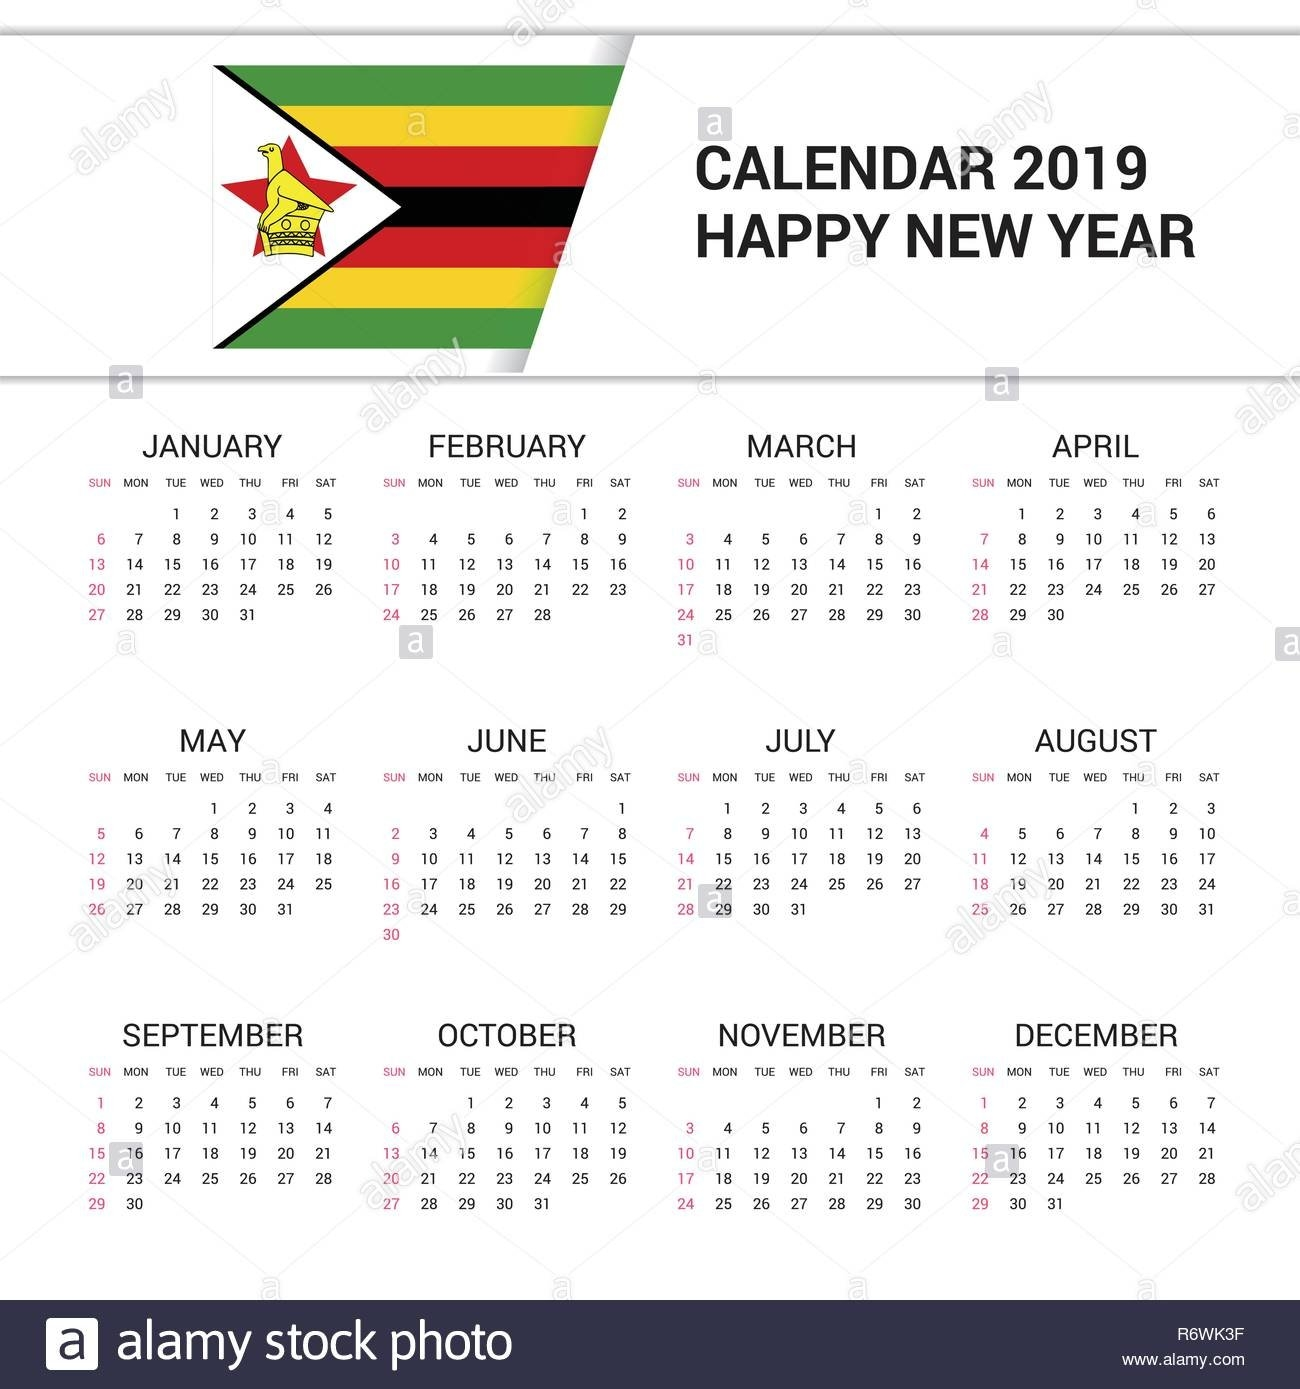 April 18 Cut Out Stock Images & Pictures - Alamy School Calendar 2019 Zimbabwe